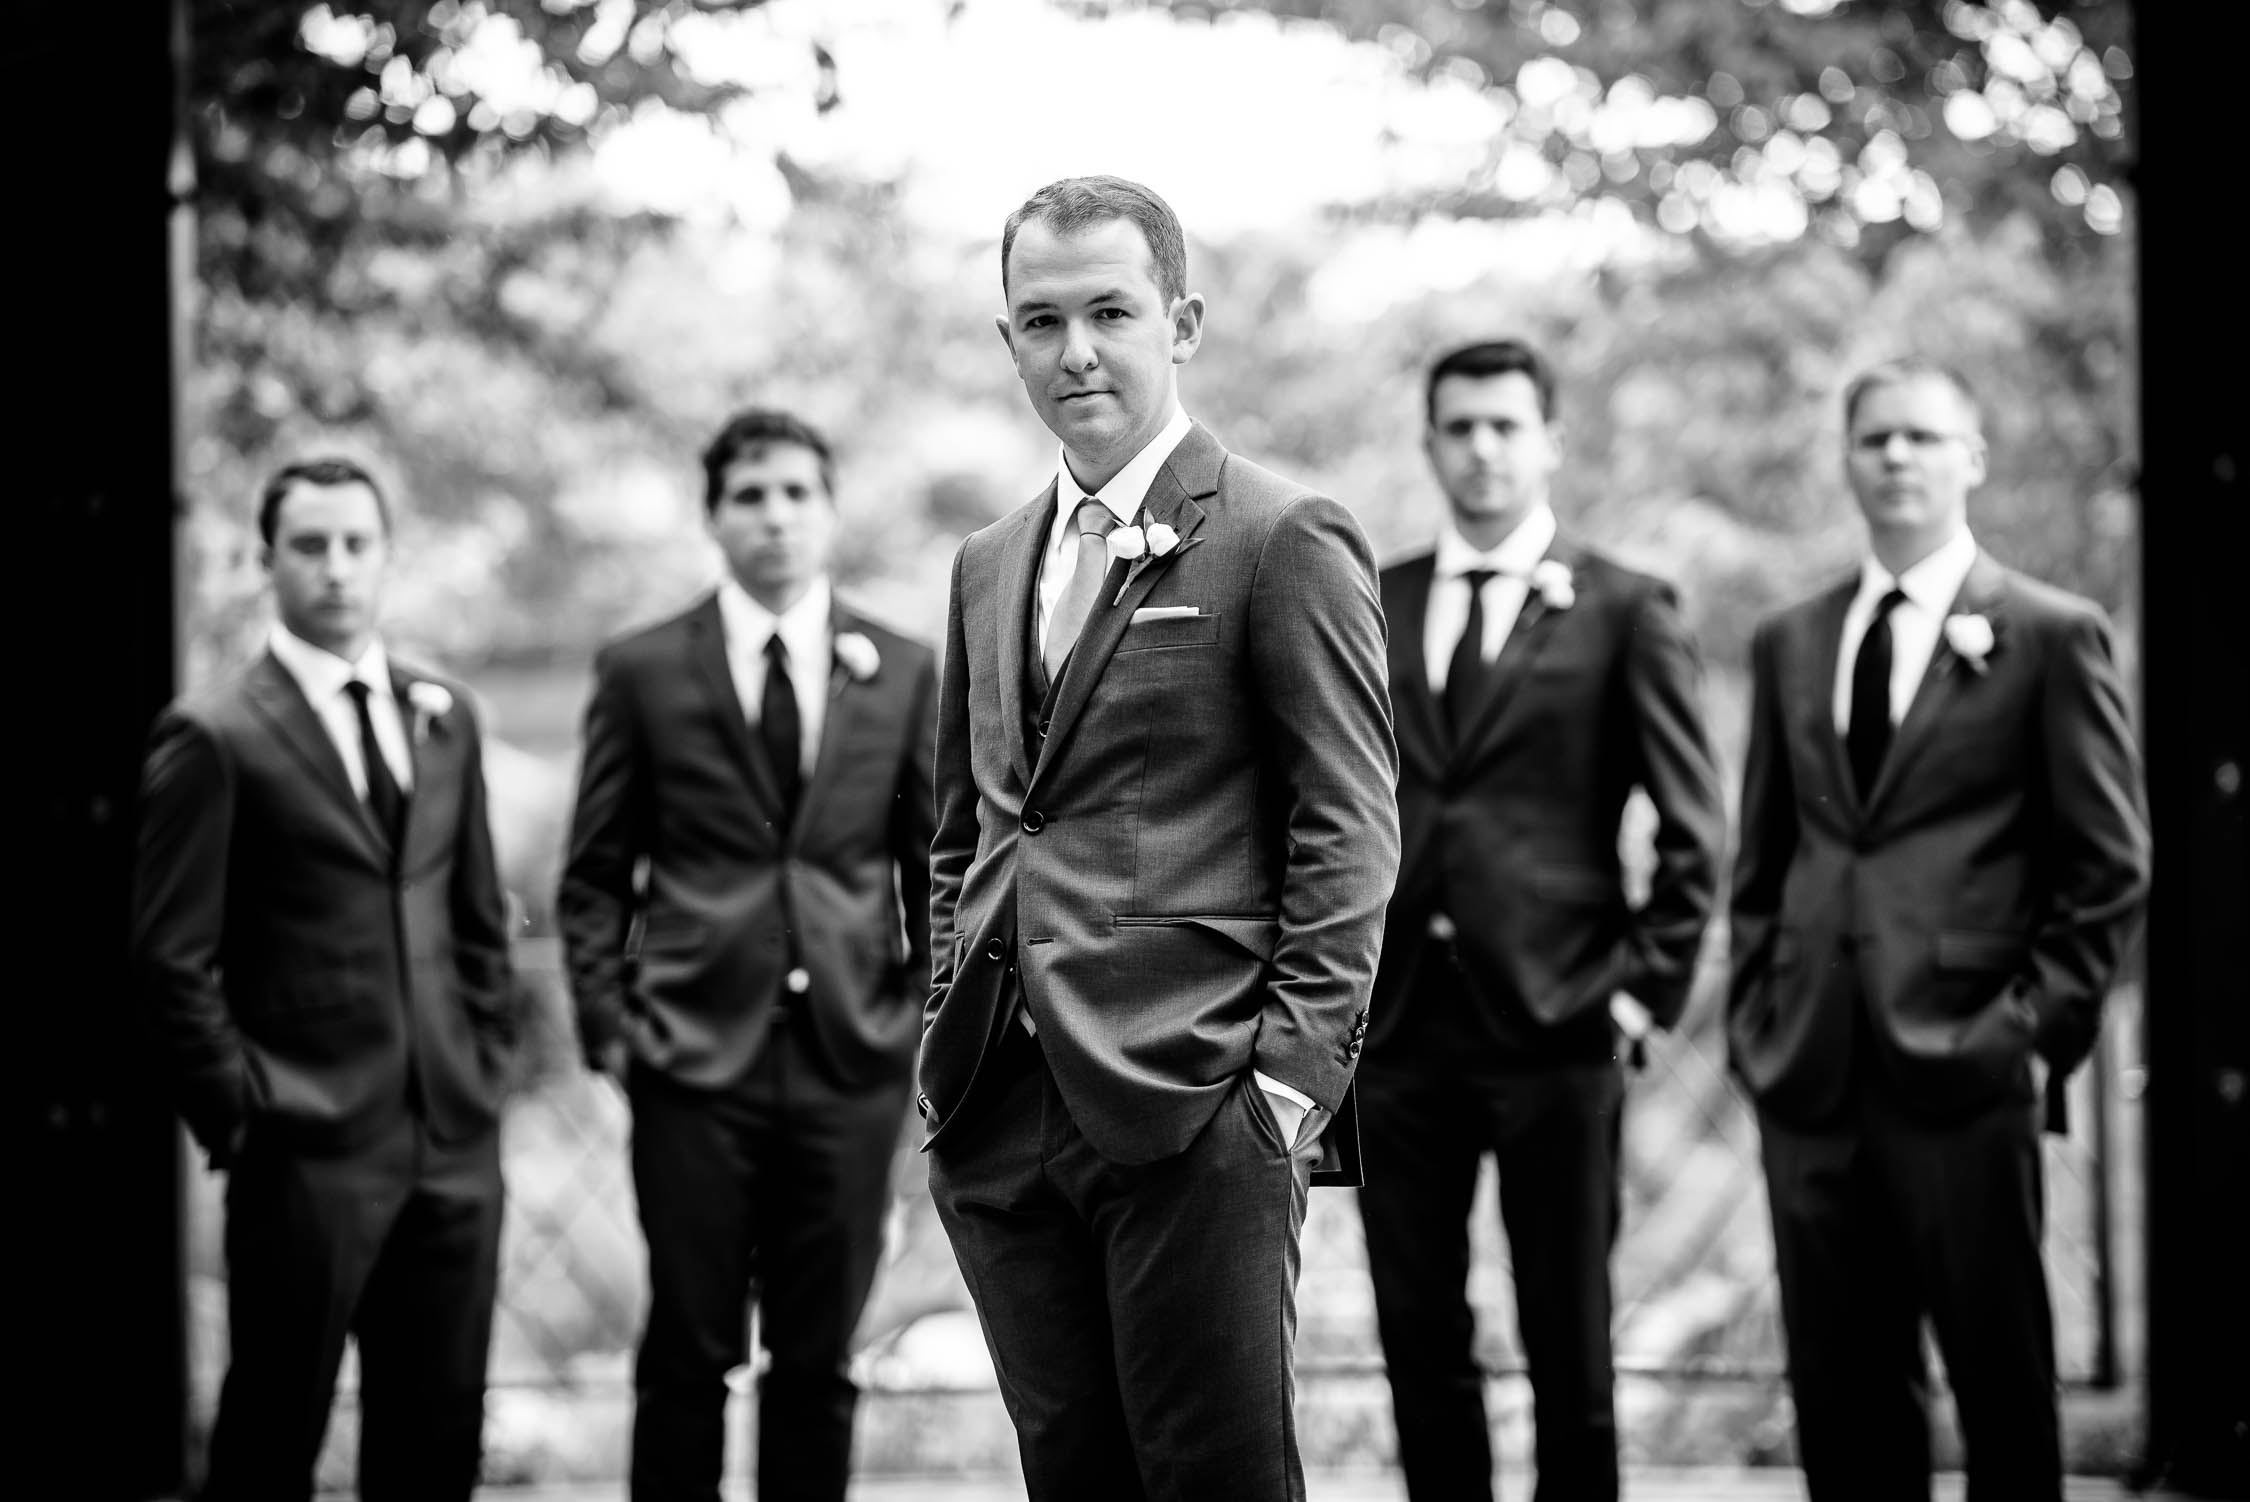 The groomsmen before a wedding at Independence Grove in Libertyville.